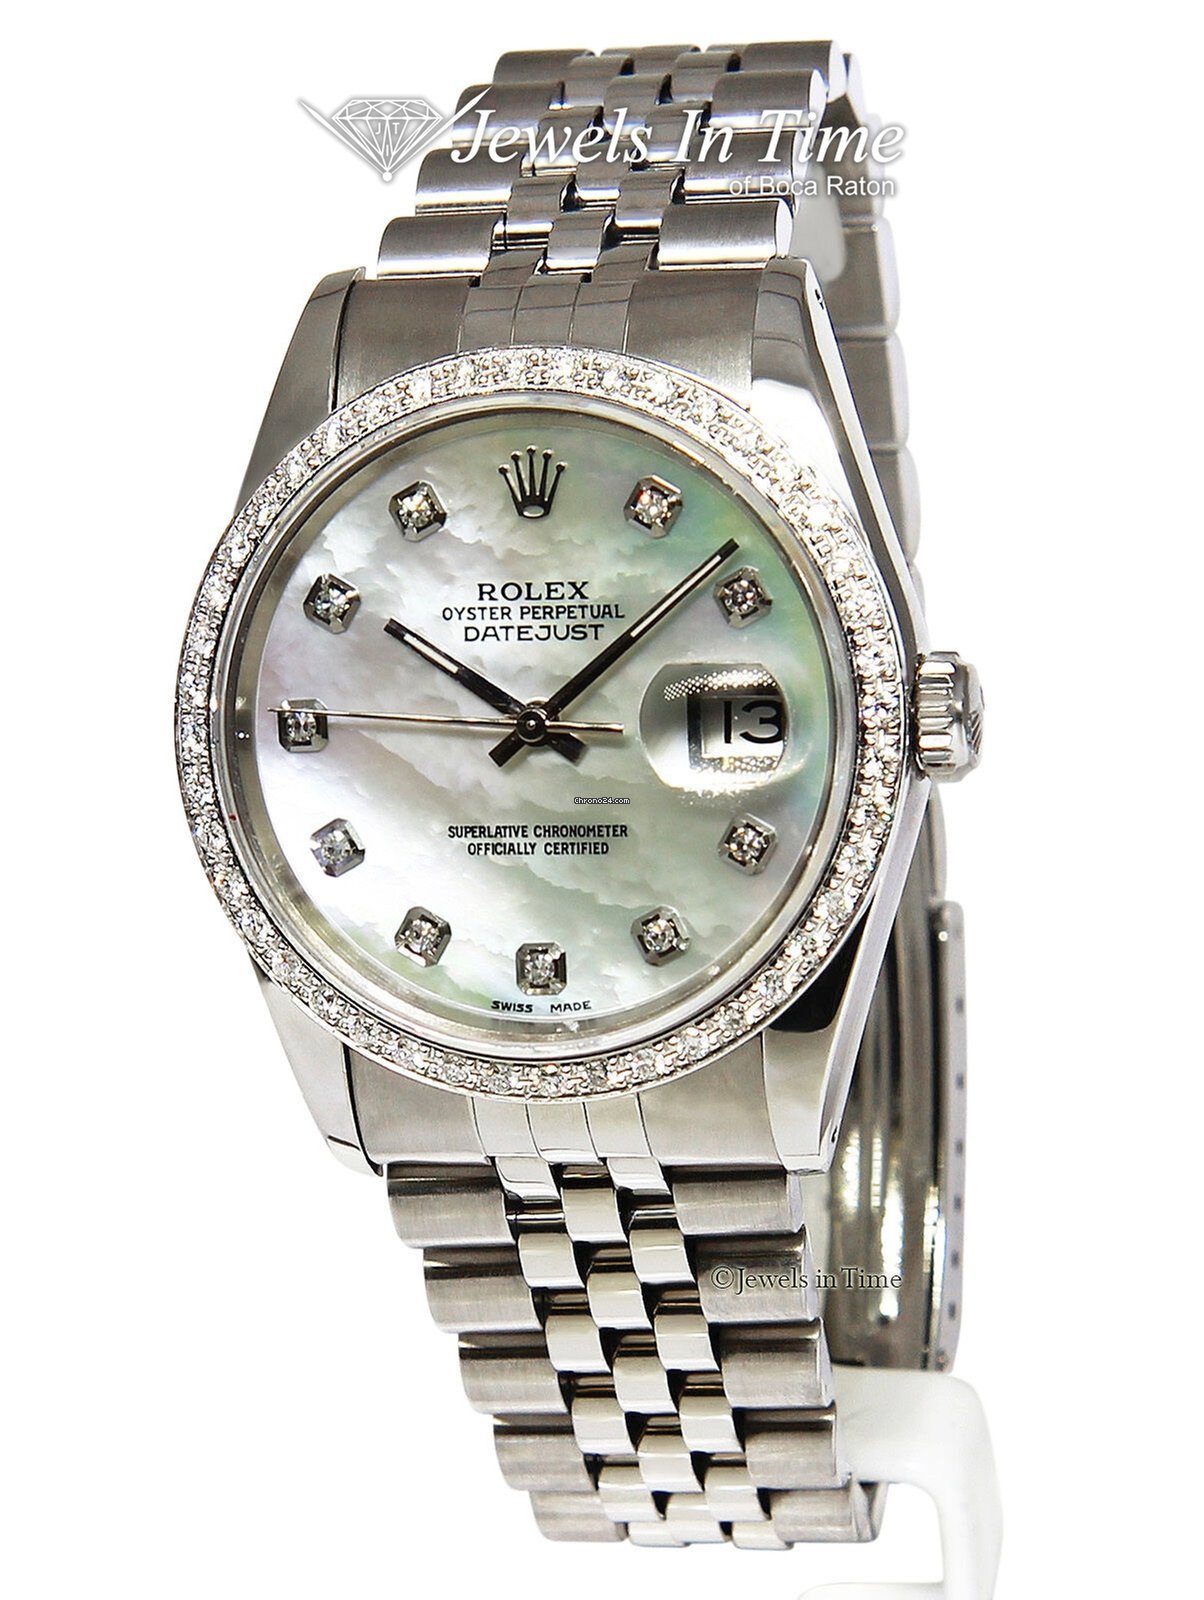 df3de9070dc5c Rolex Mens Datejust Stainless Steel MOP Diamond Automatic... for $5,950 for  sale from a Trusted Seller on Chrono24